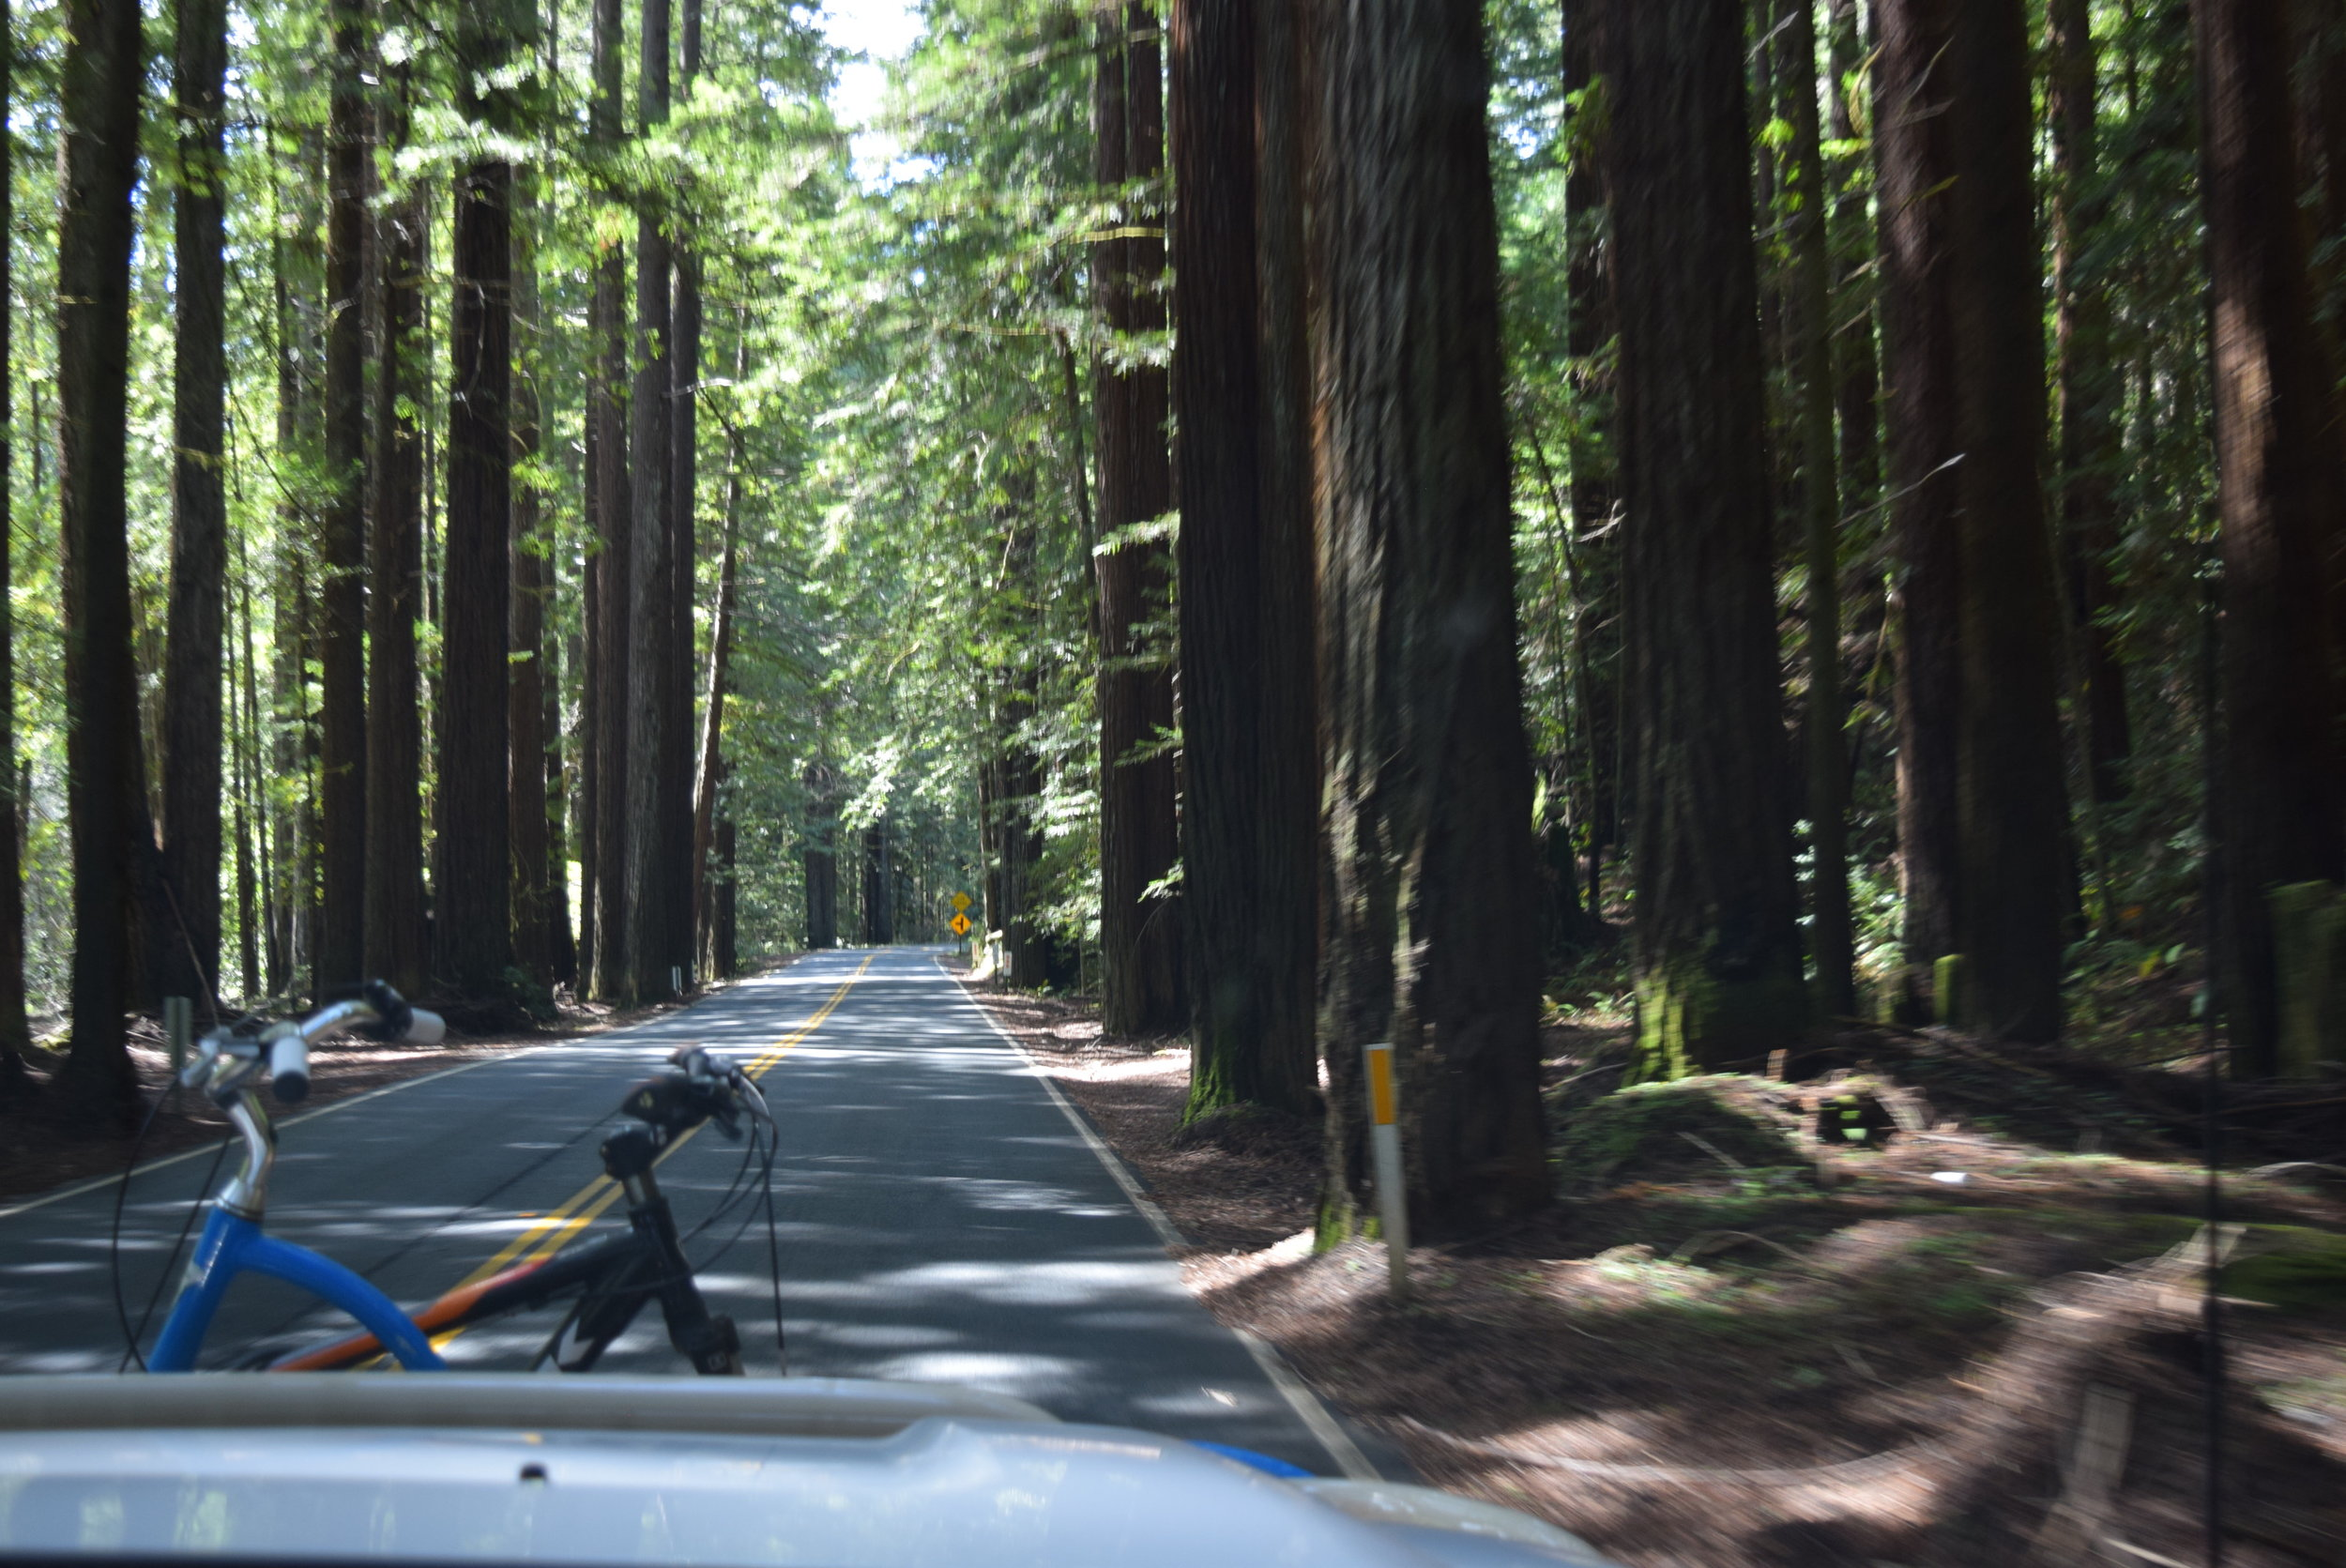 Driving through the redwoods.